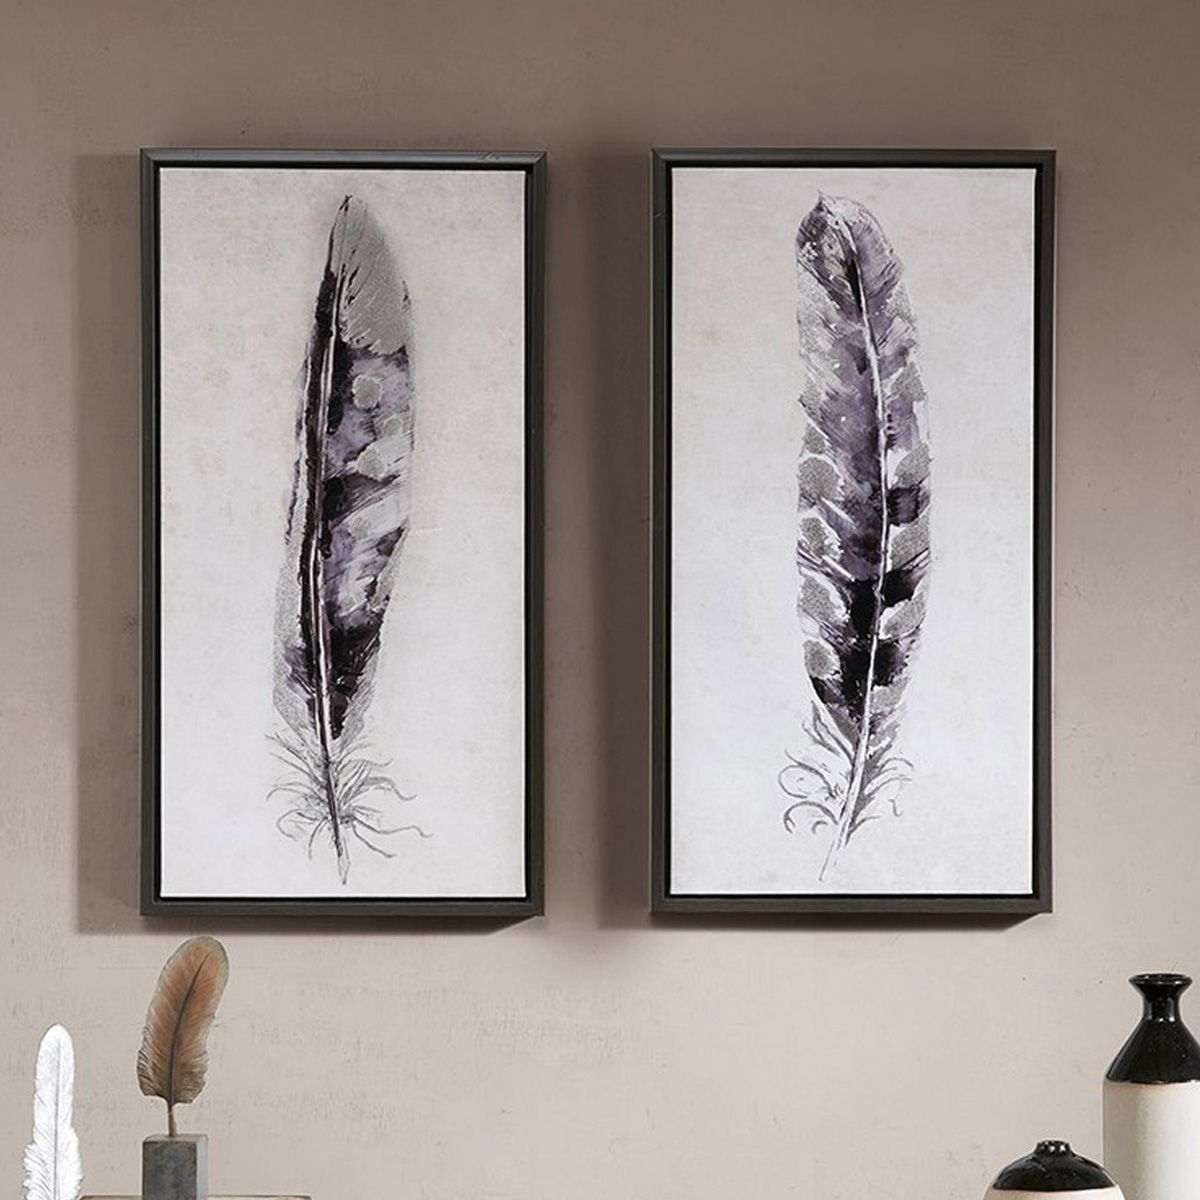 Monotone Feathers Framed Canvases - Set of 2